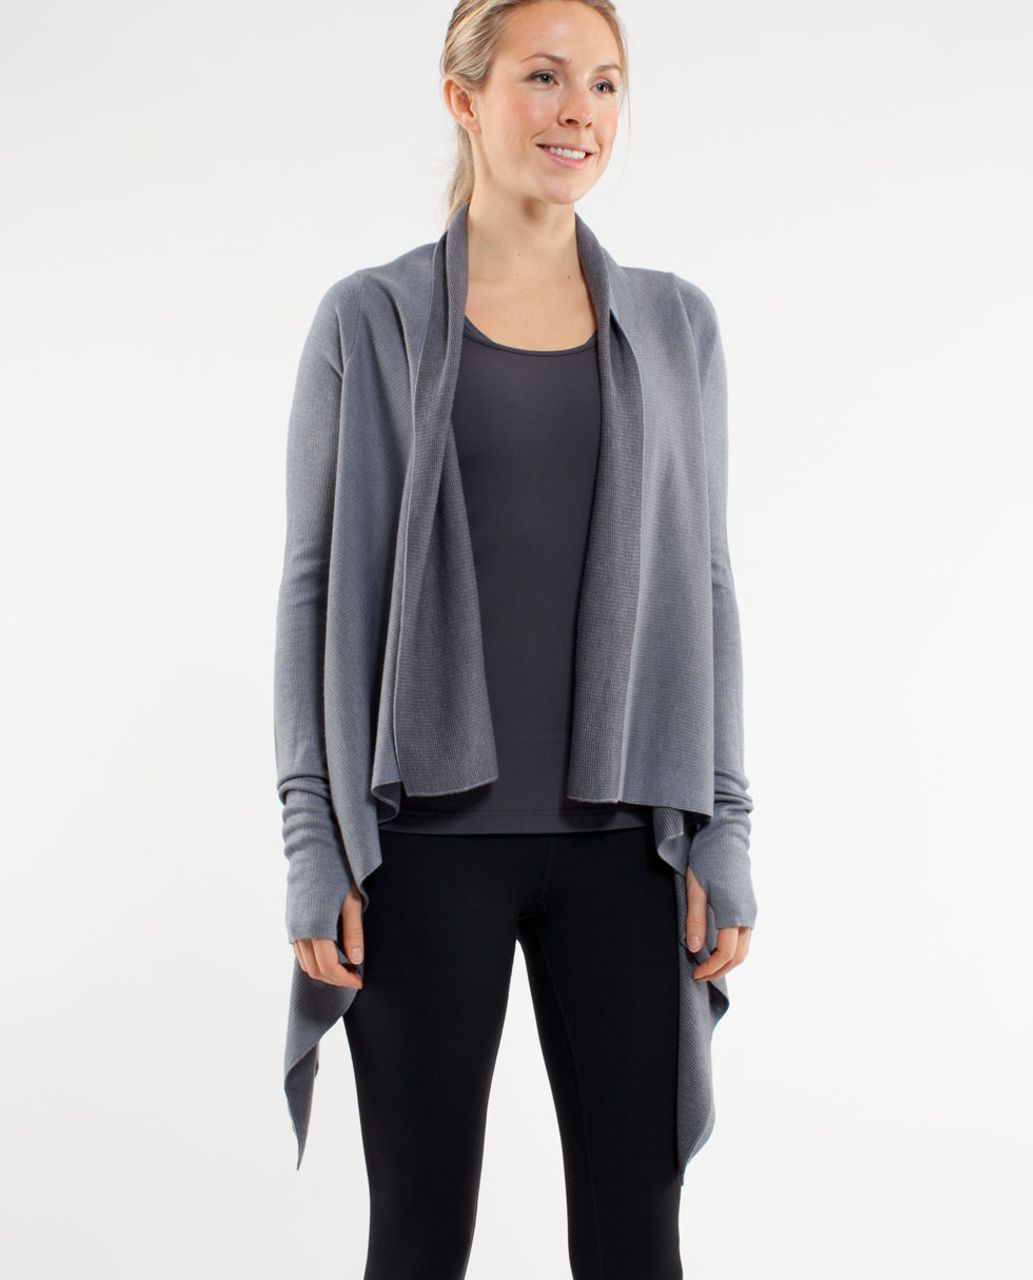 Lululemon Reflection Wrap - Heathered Blurred Grey /  Coal